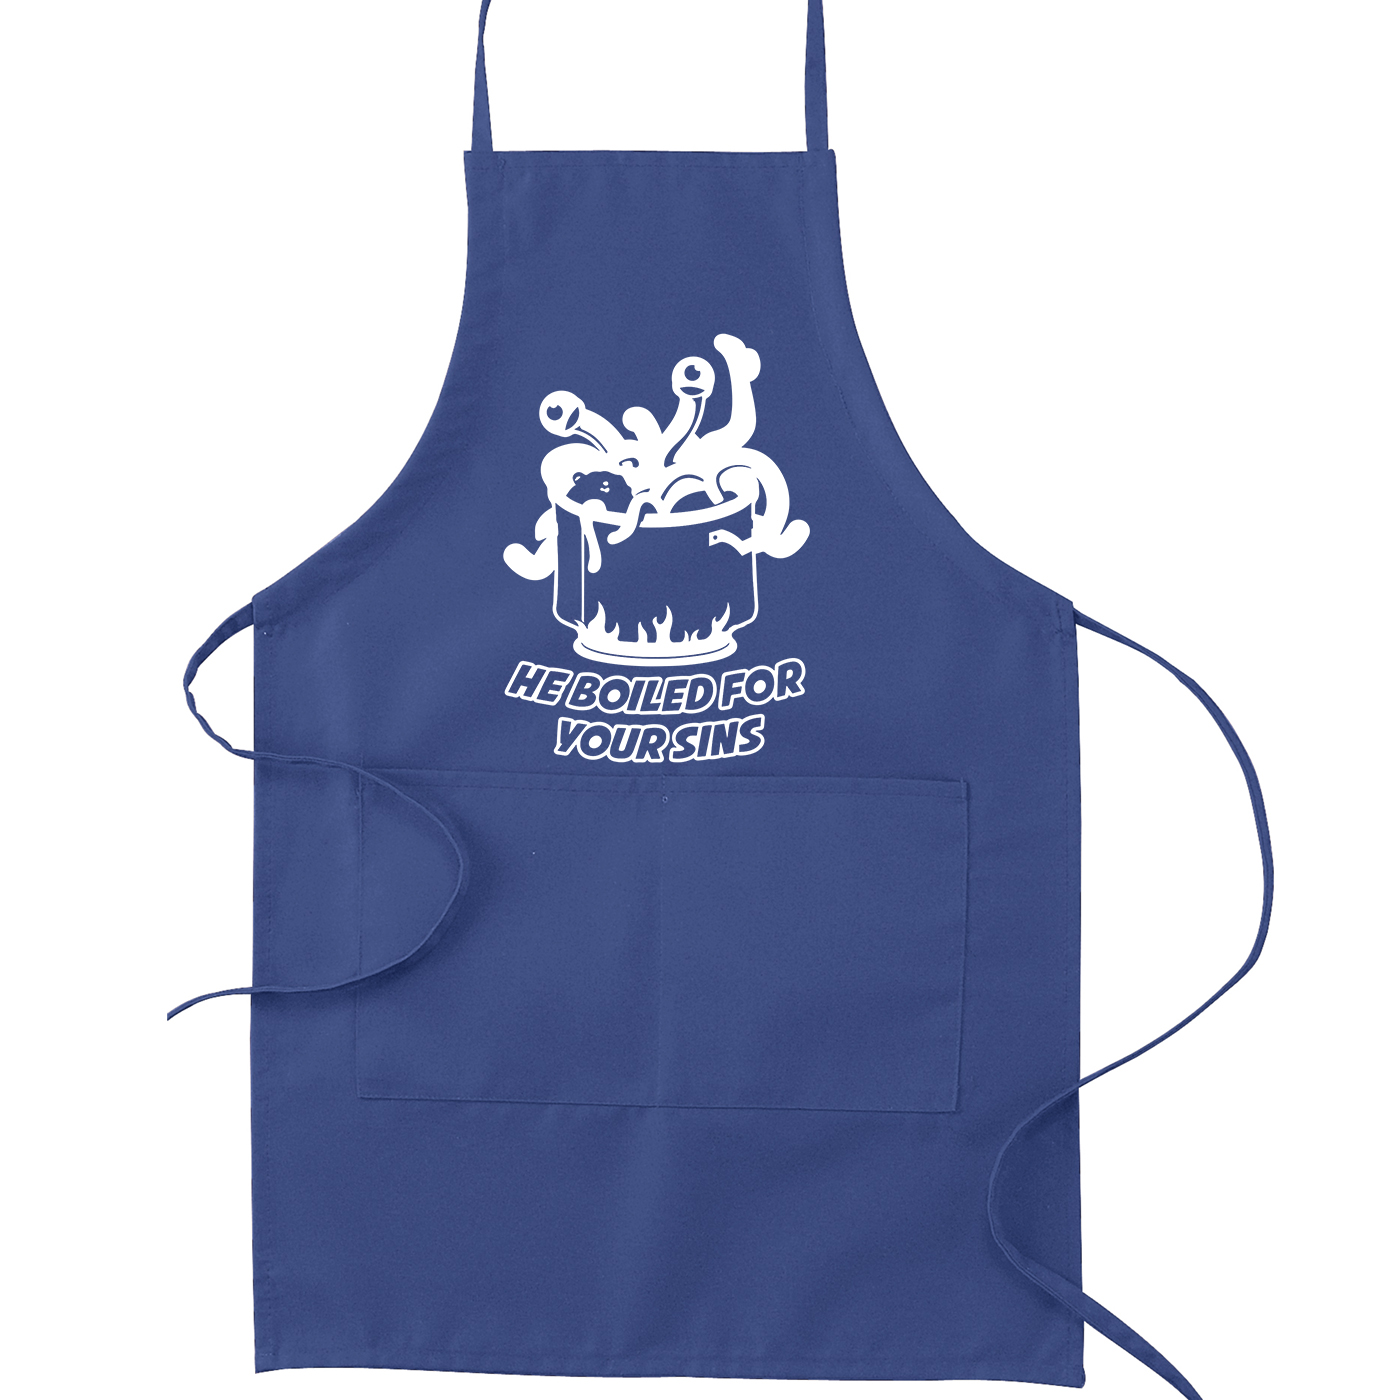 FSM Flying Spaghetti Monster He Boiled for Your Sins Kitchen Apron